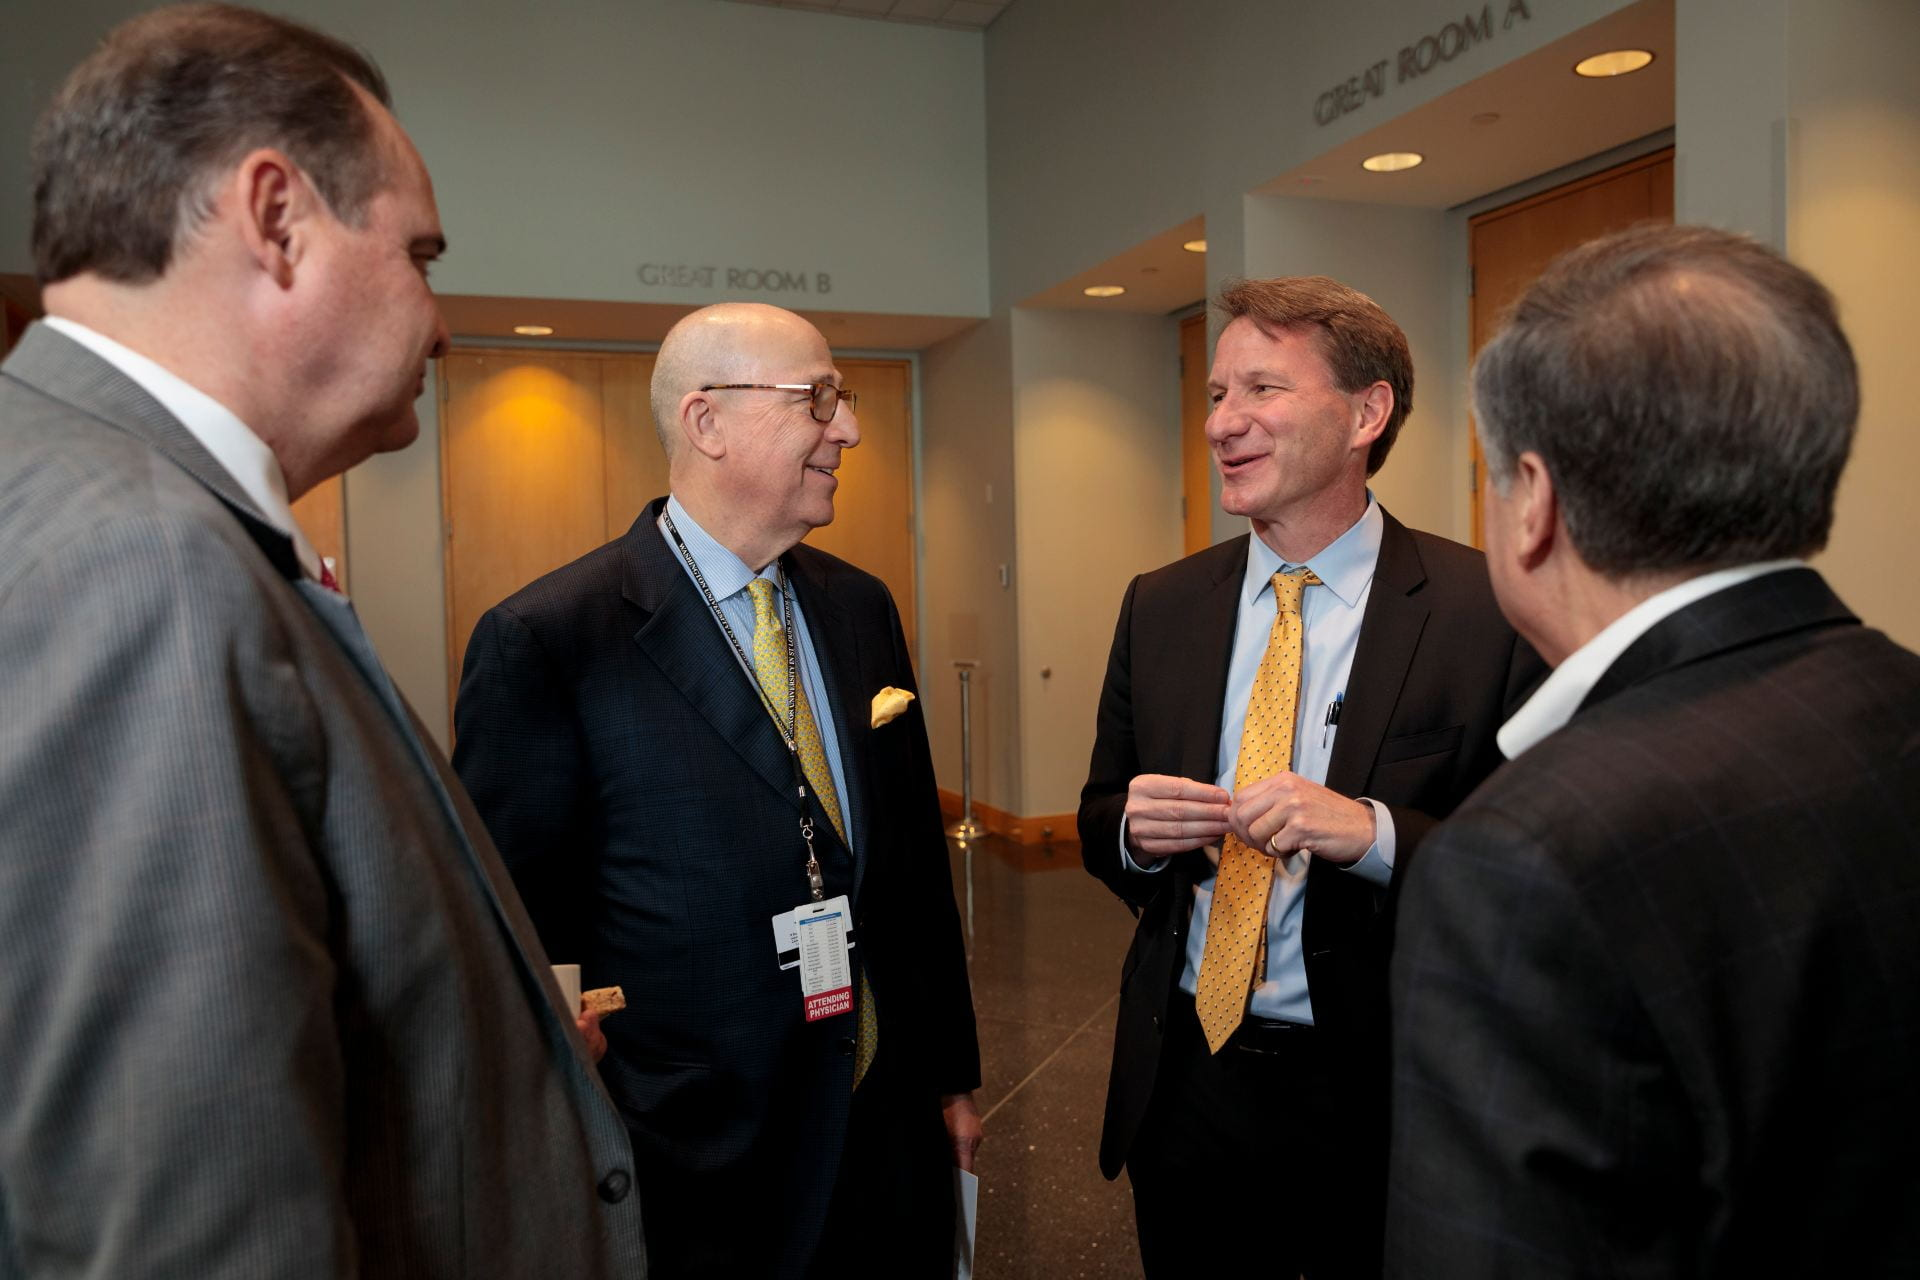 """Dennis Hallahan, MD, Chairman of the Department of Radiation Oncology, left, Timothy Eberlein, MD, Director of Siteman Cancer Center, NCI Director Norman E. """"Ned"""" Sharpless, MD, and Robert Schreiber, PhD, talk during a break."""